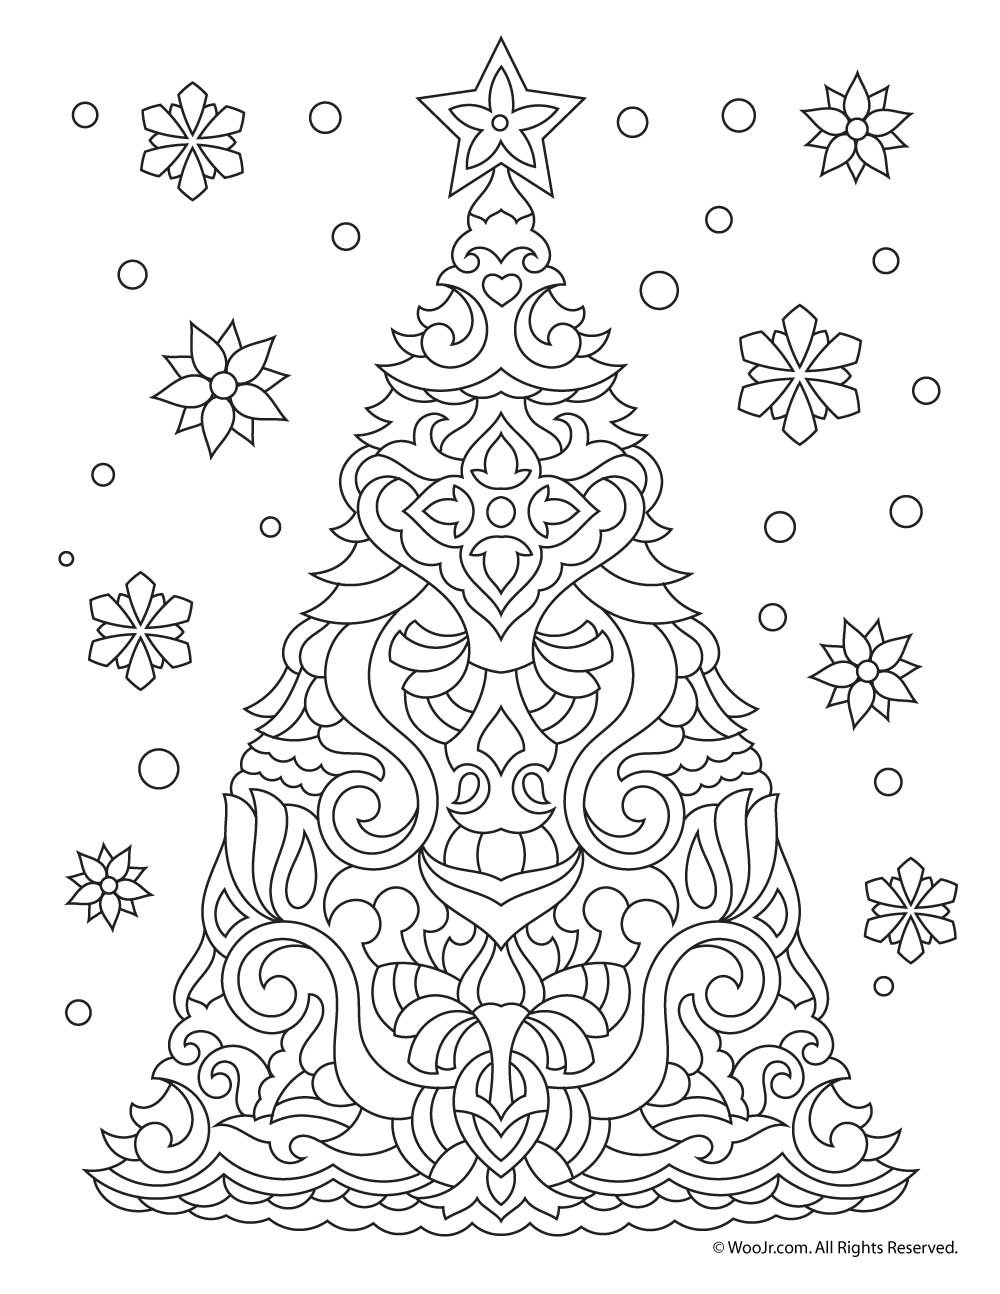 Christmas Tree Adult Coloring Page | Woo! Jr. Kids Activities